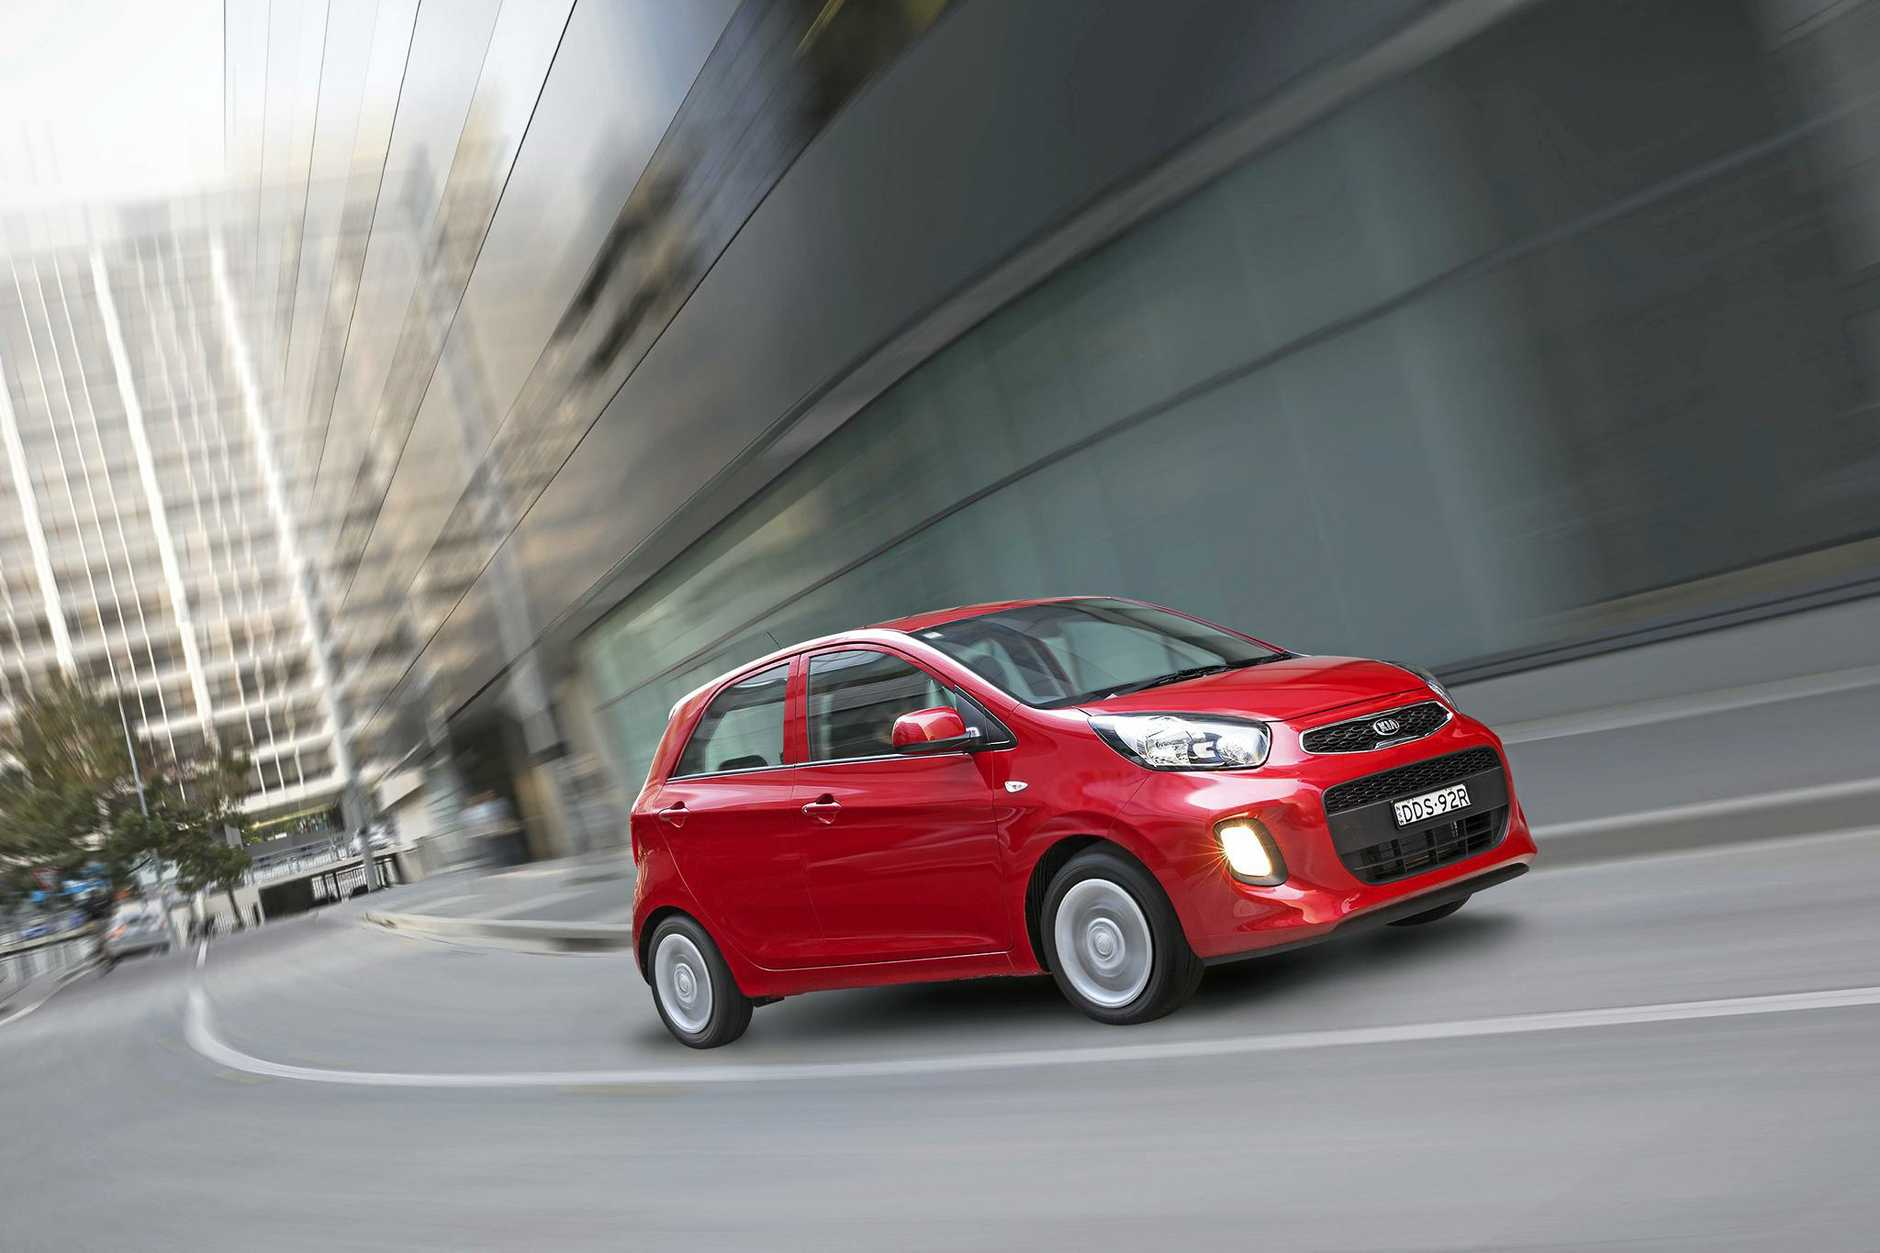 Best Micro Car was the Kia Picanto Si.